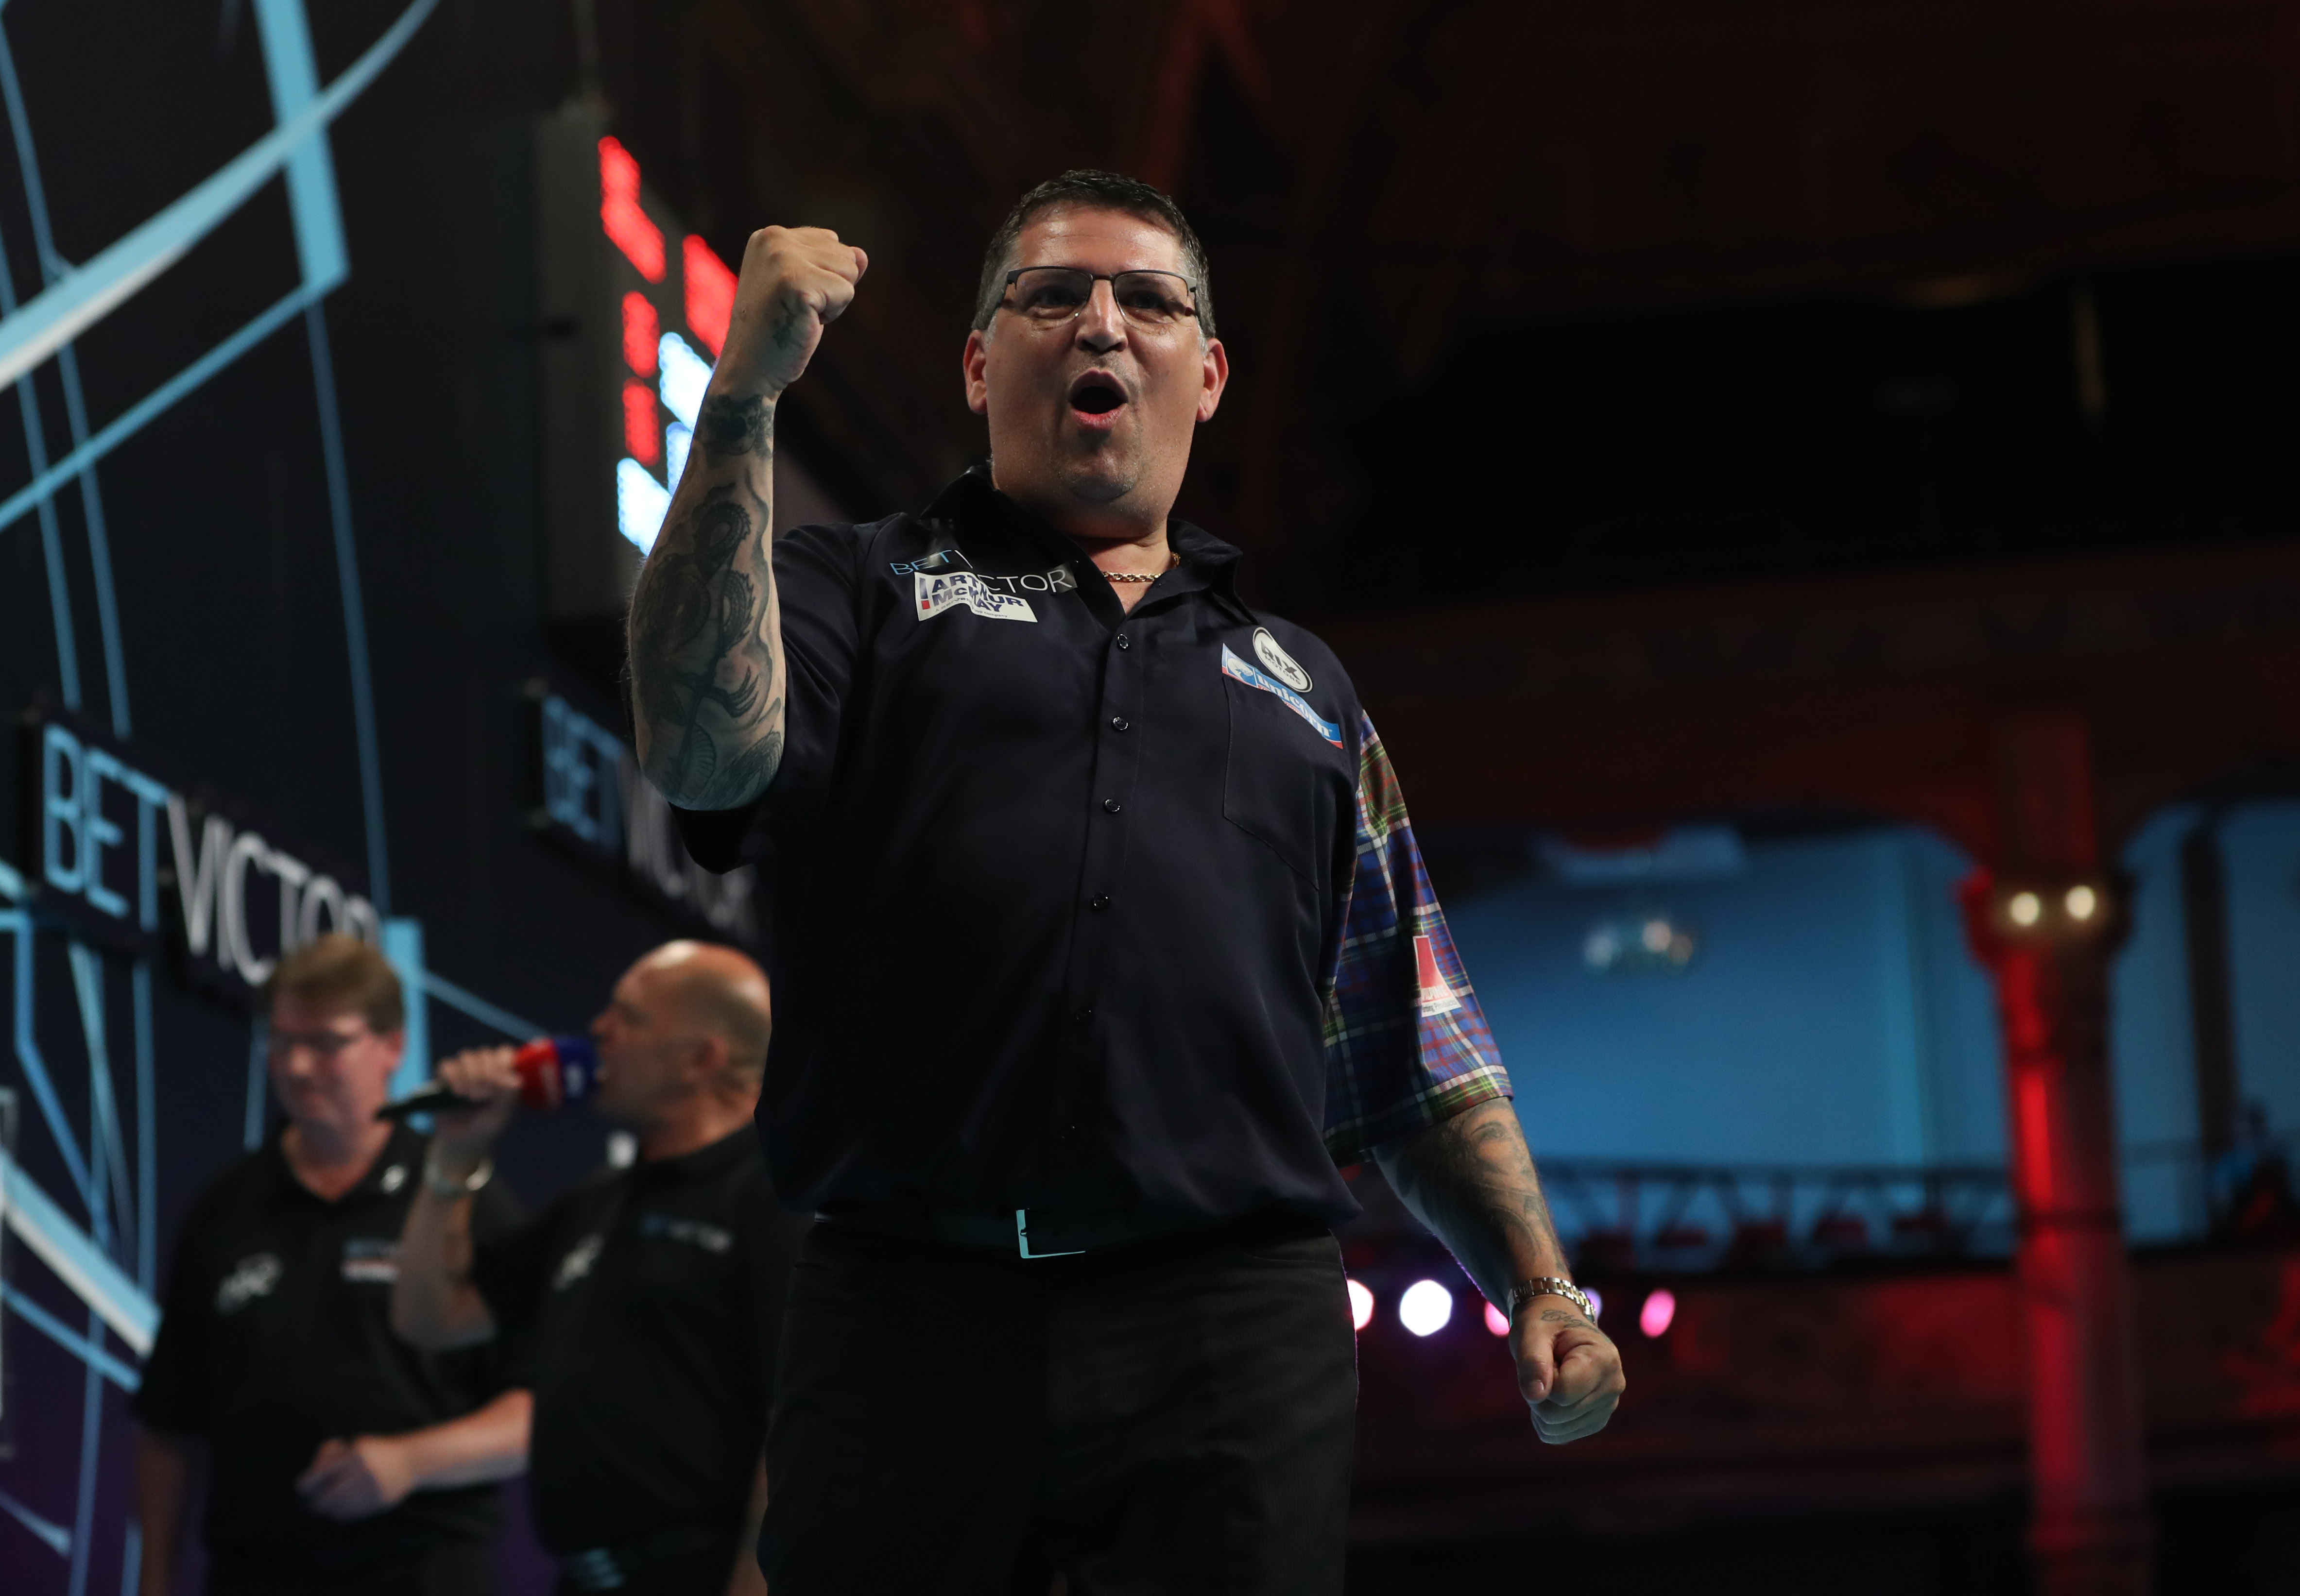 Gary Anderson Walk On Song